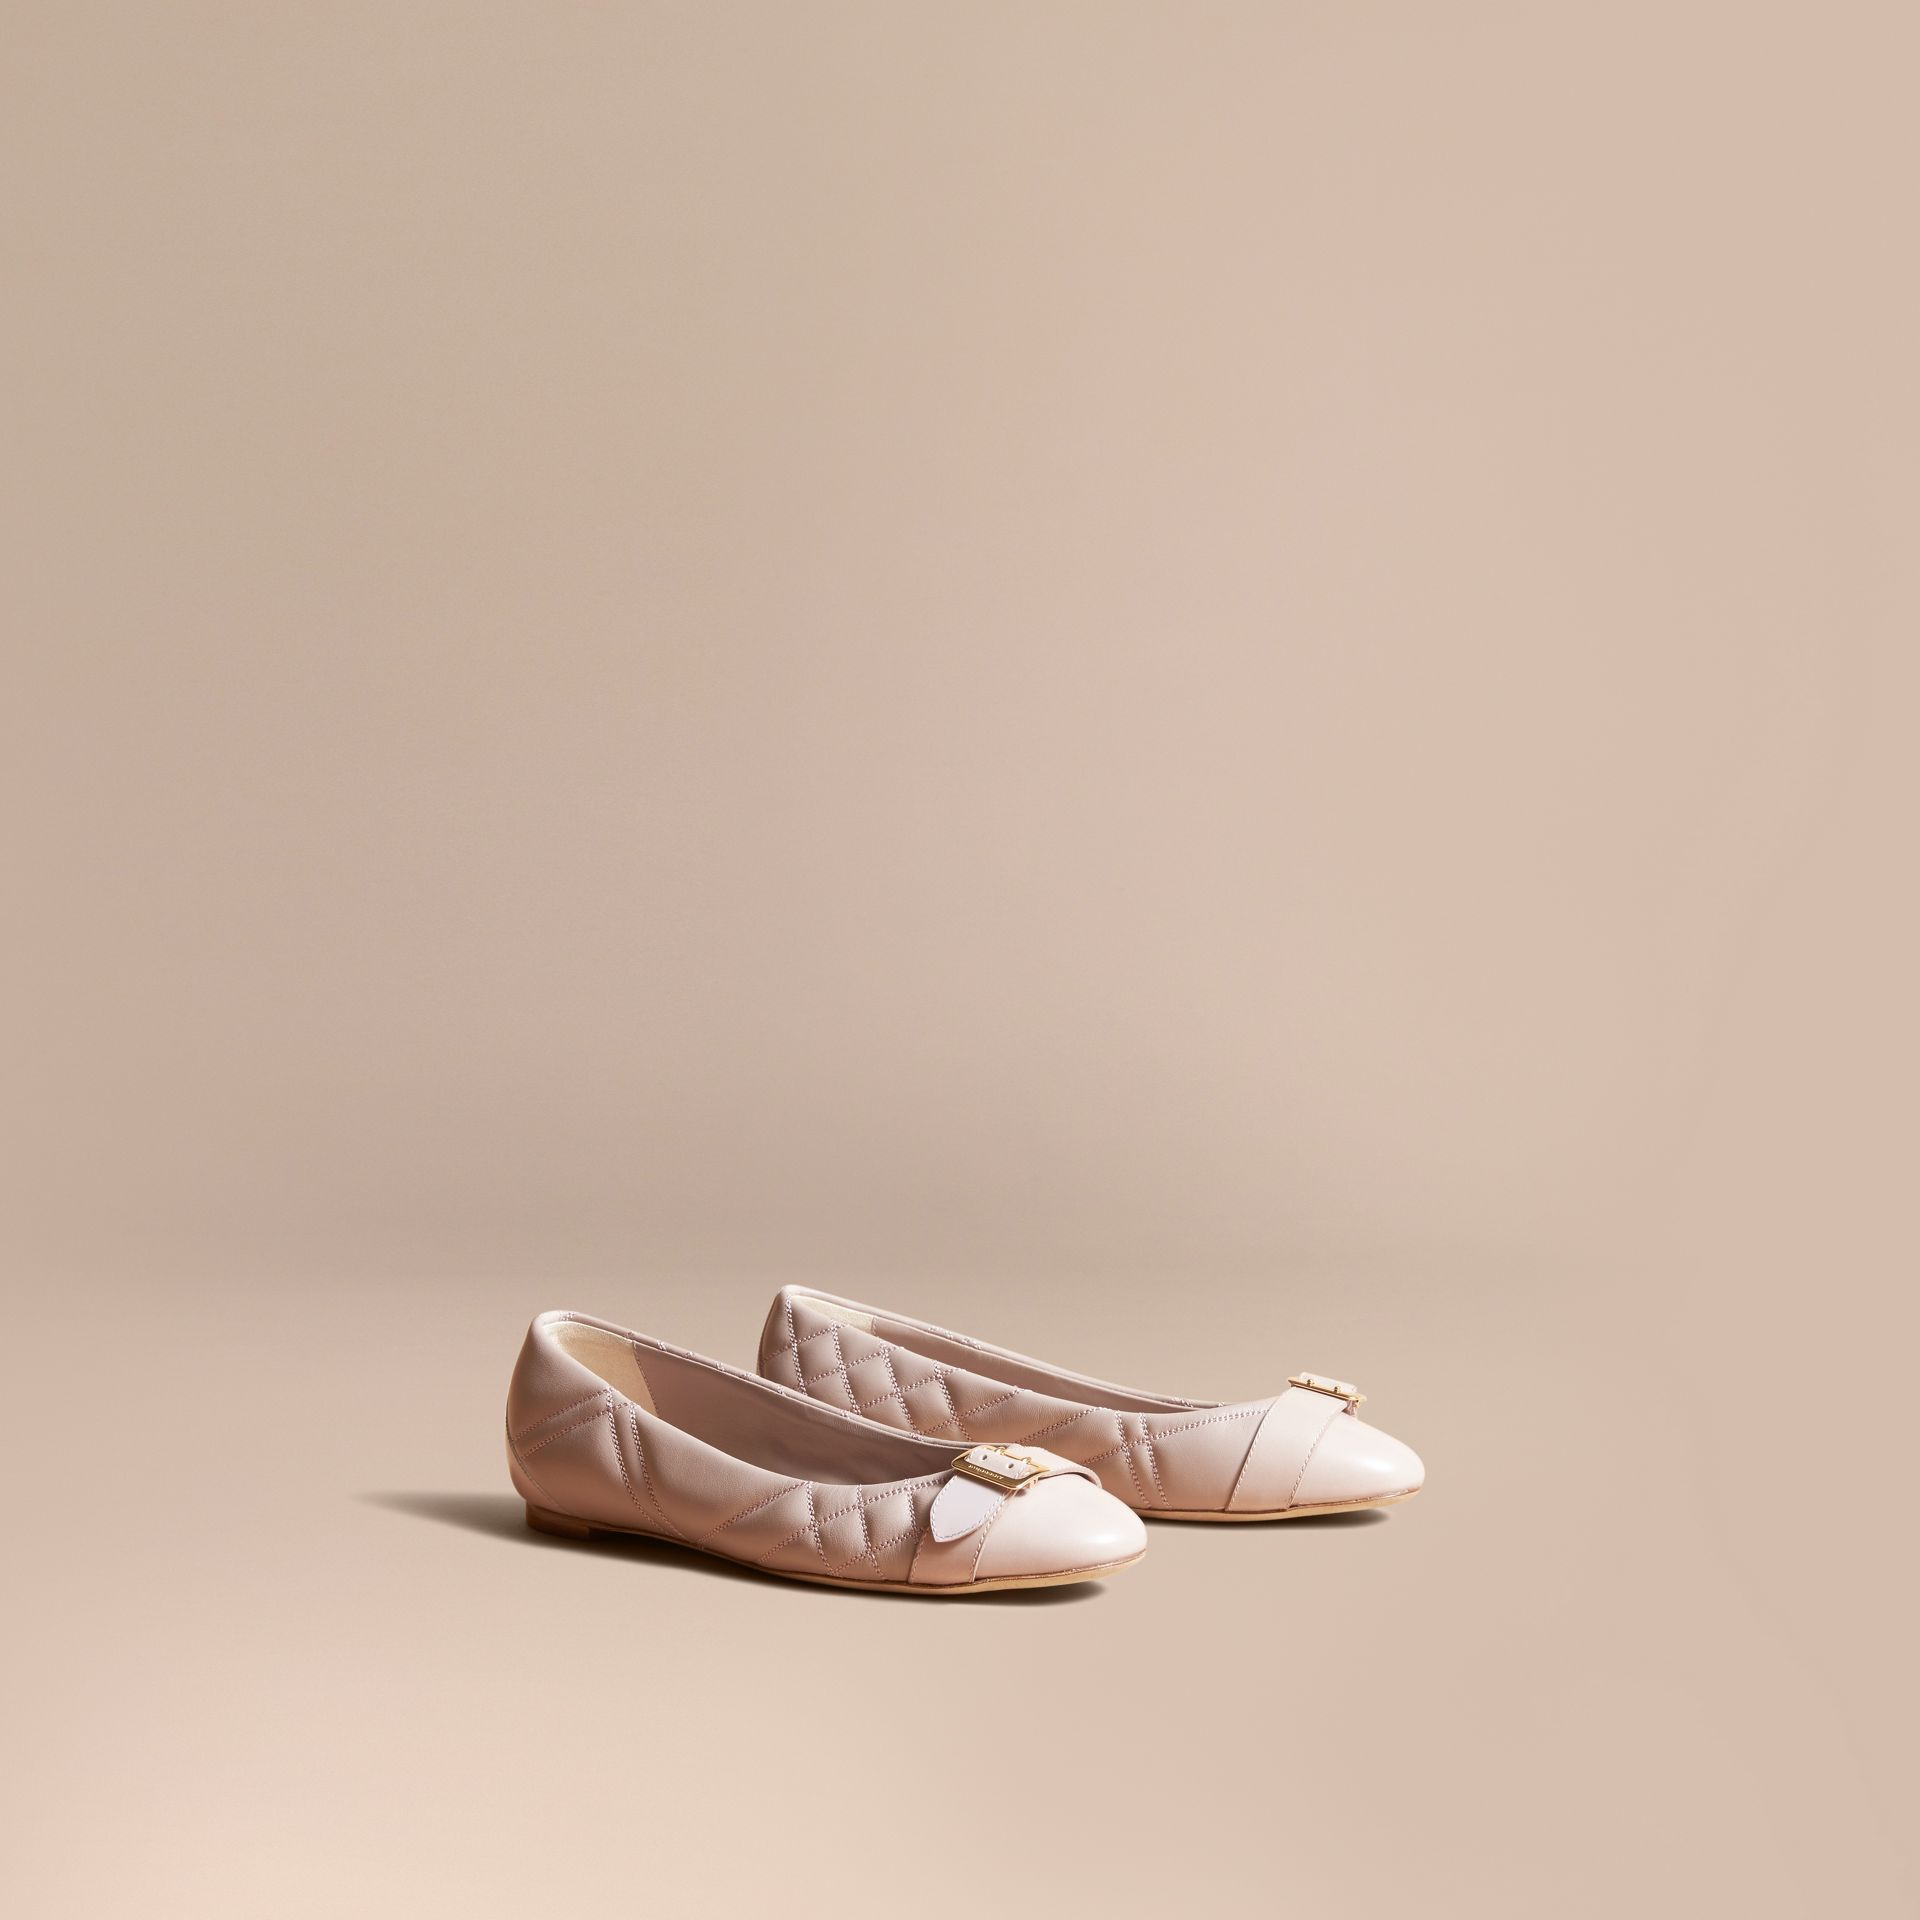 Buckle Detail Quilted Lambskin Leather Ballerinas in Ivory Pink - Women | Burberry - gallery image 1